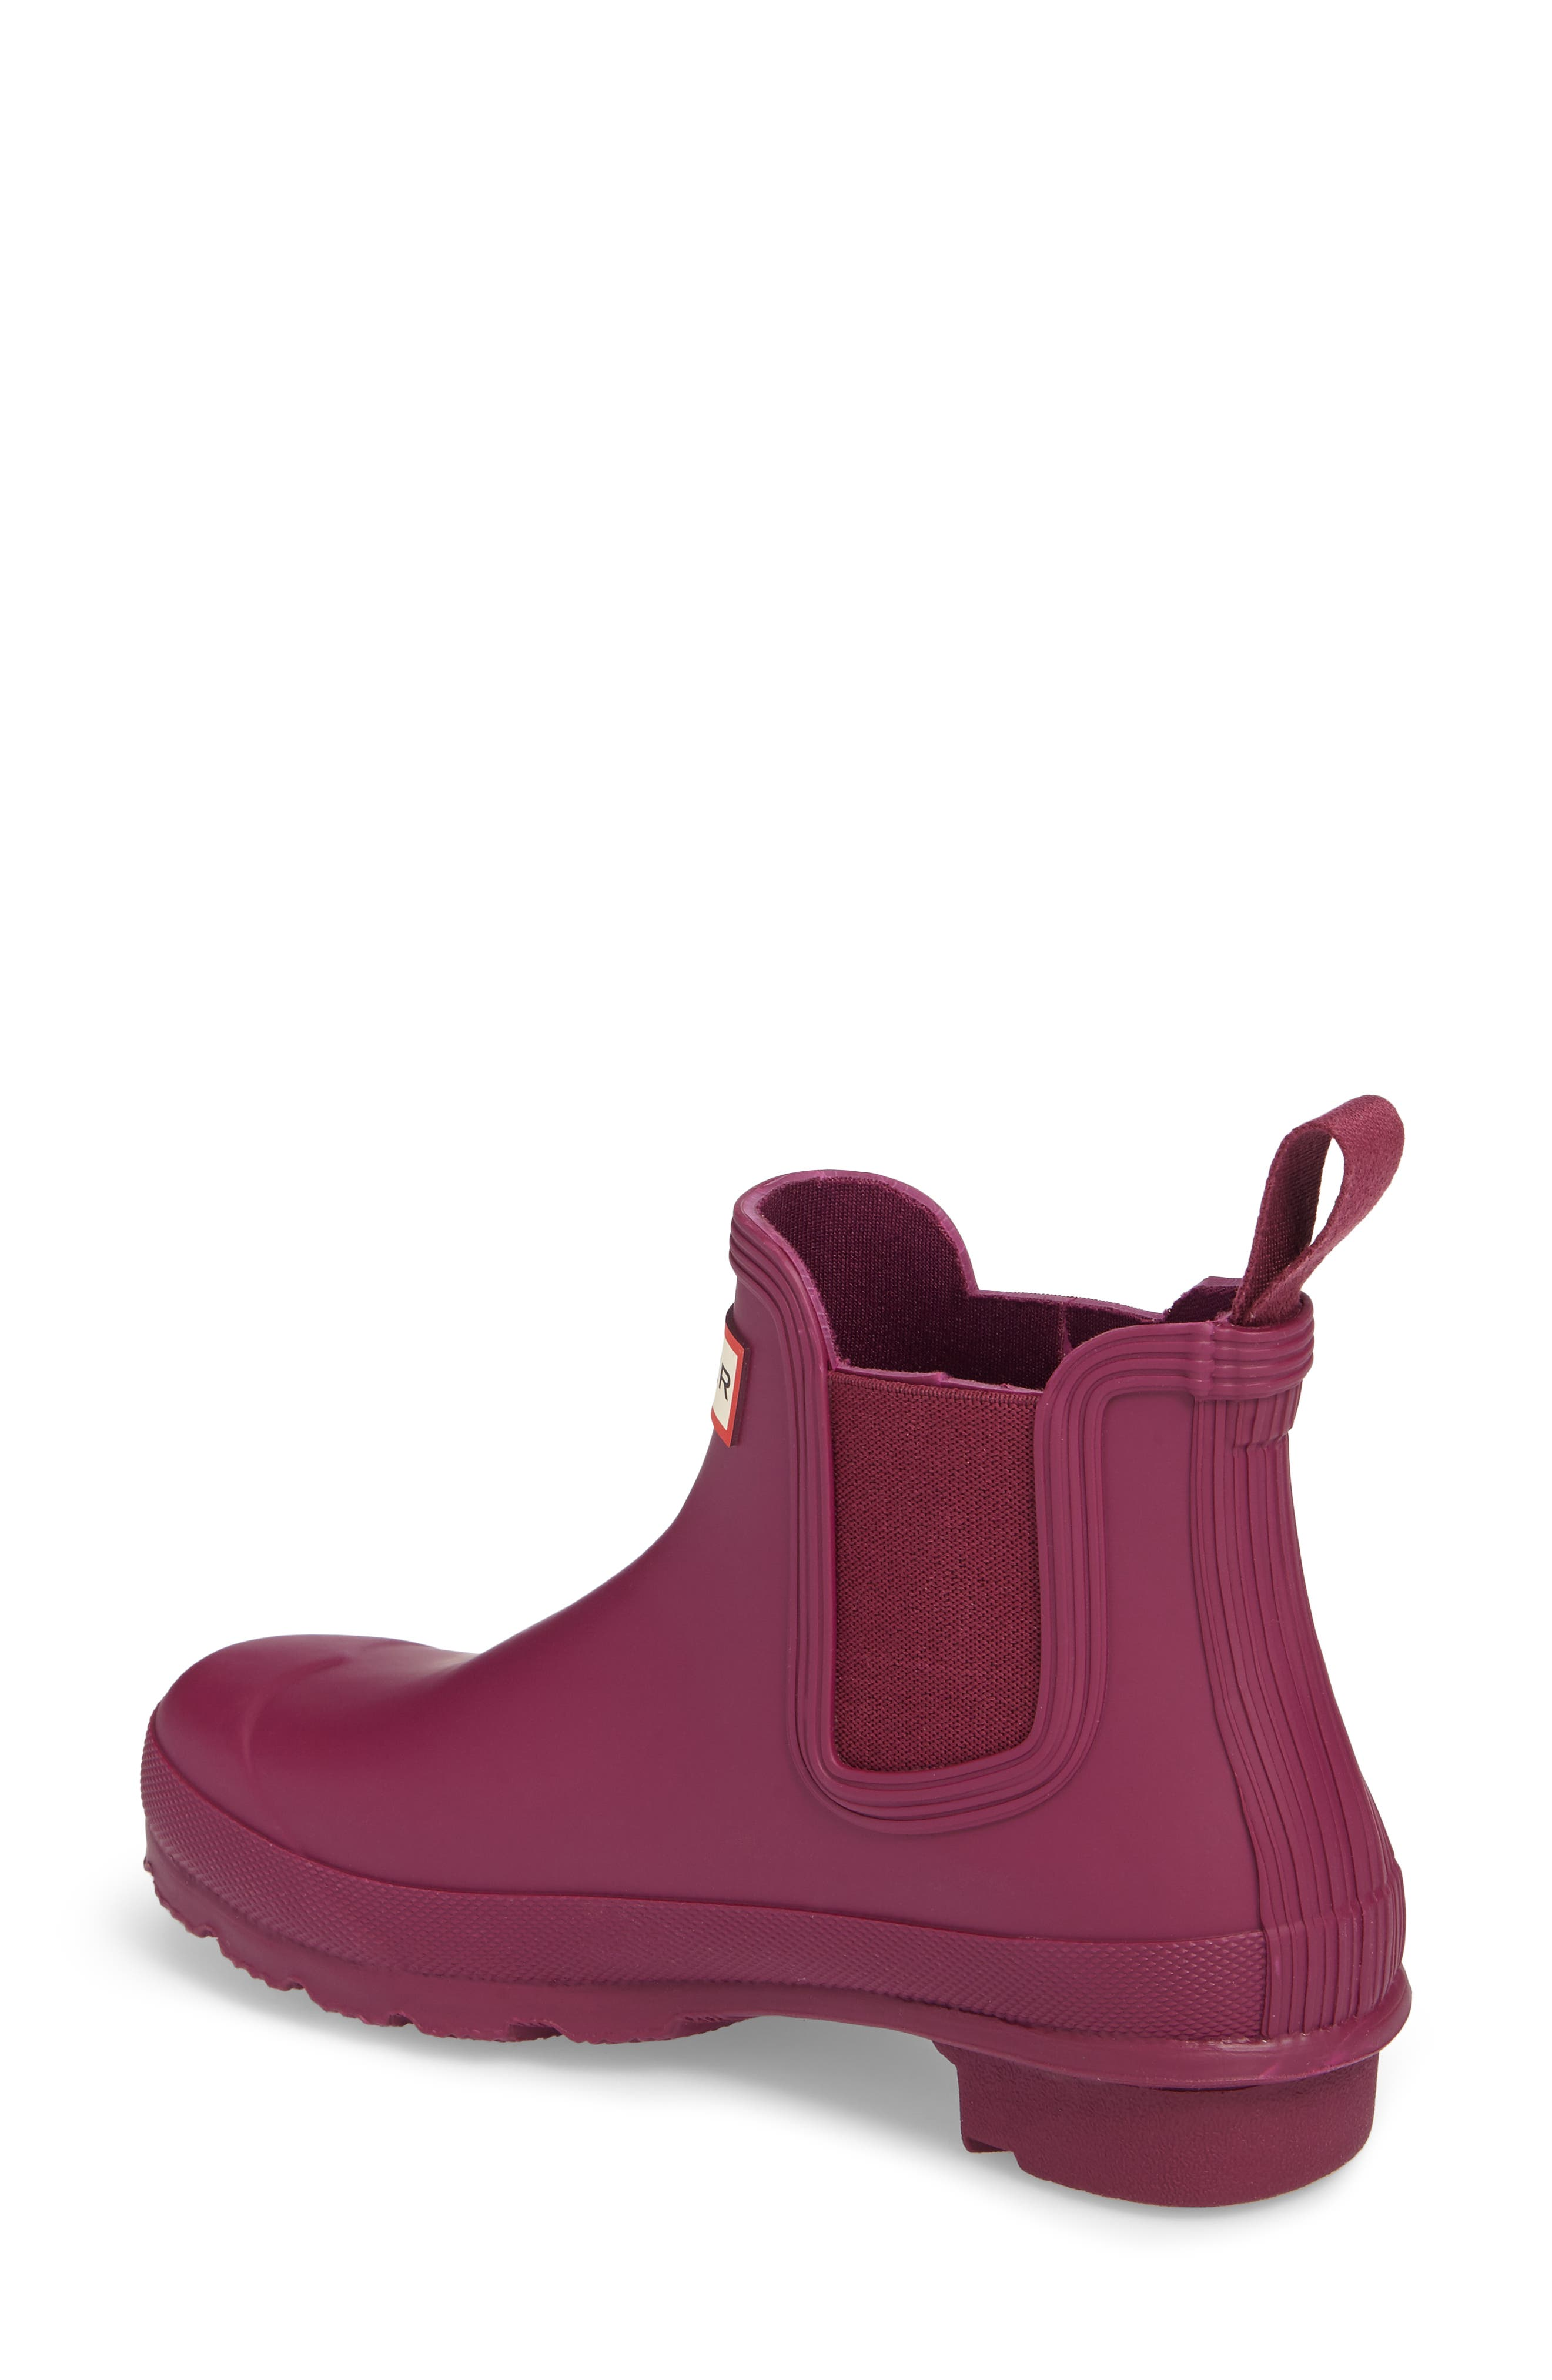 'Original' Waterproof Chelsea Rain Boot,                             Alternate thumbnail 2, color,                             Violet